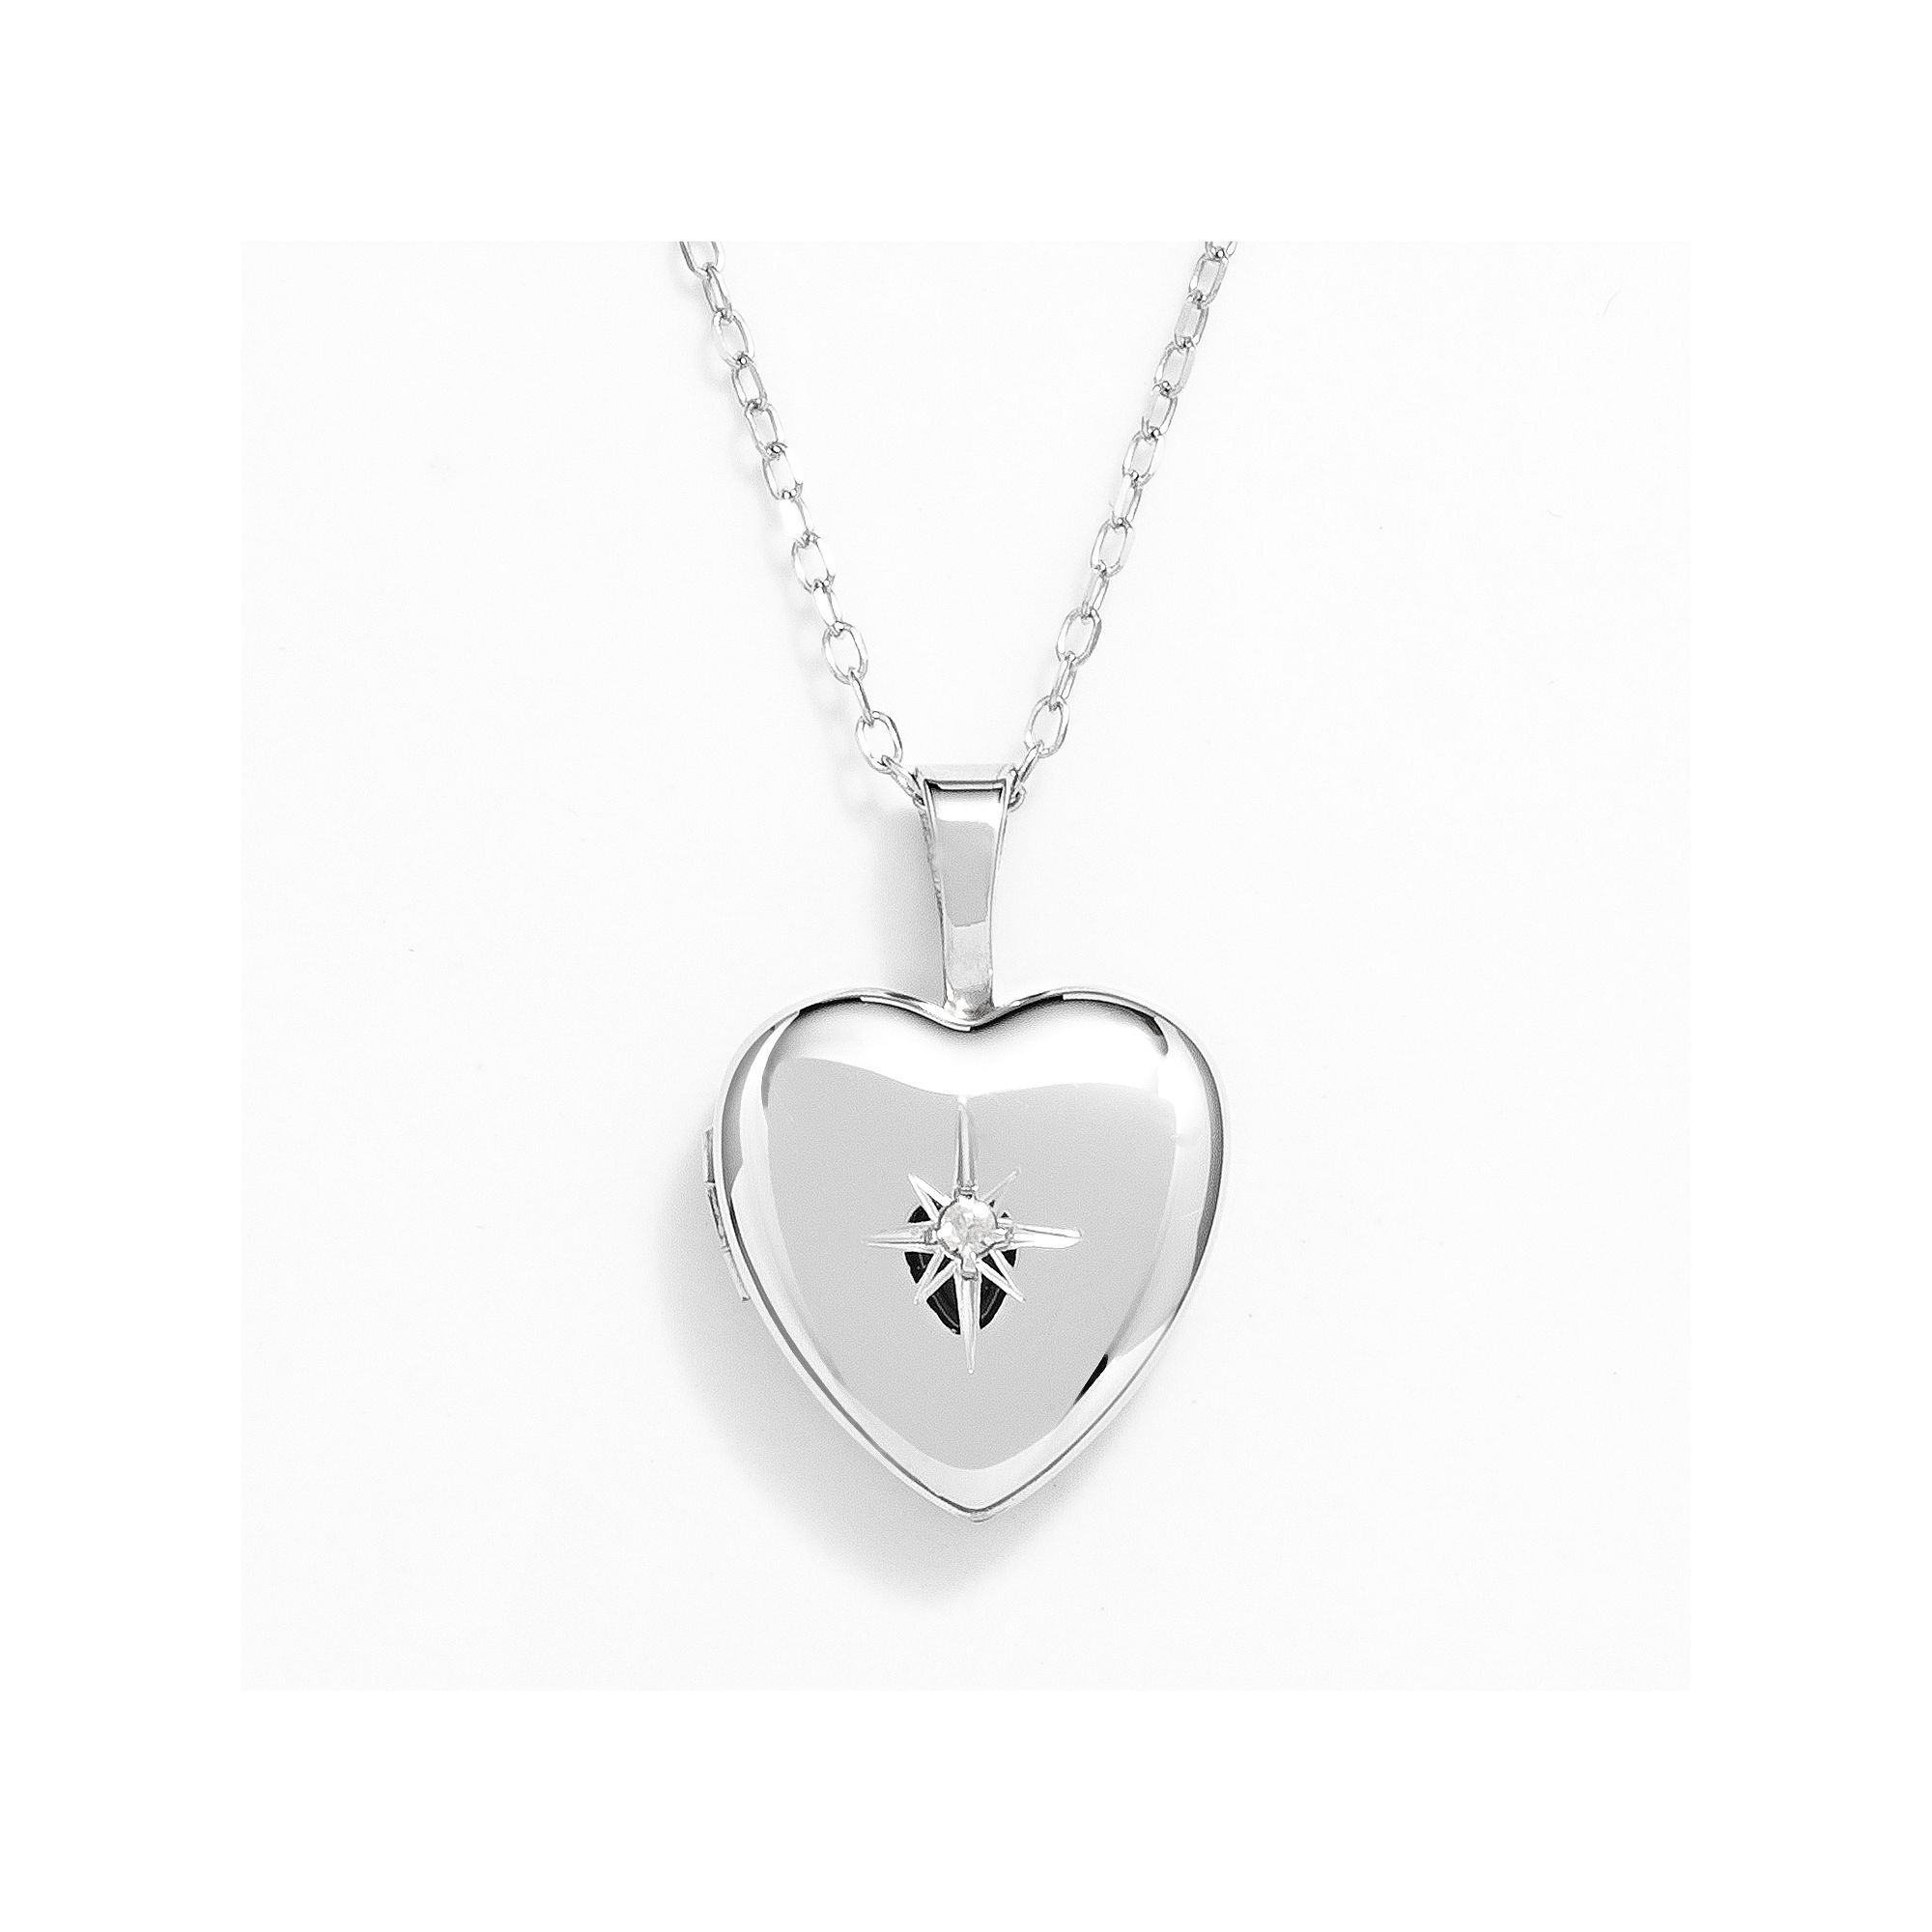 lockets use sterling girls drawing free com heart silver locket vintage for cz at personal pendant style necklace getdrawings